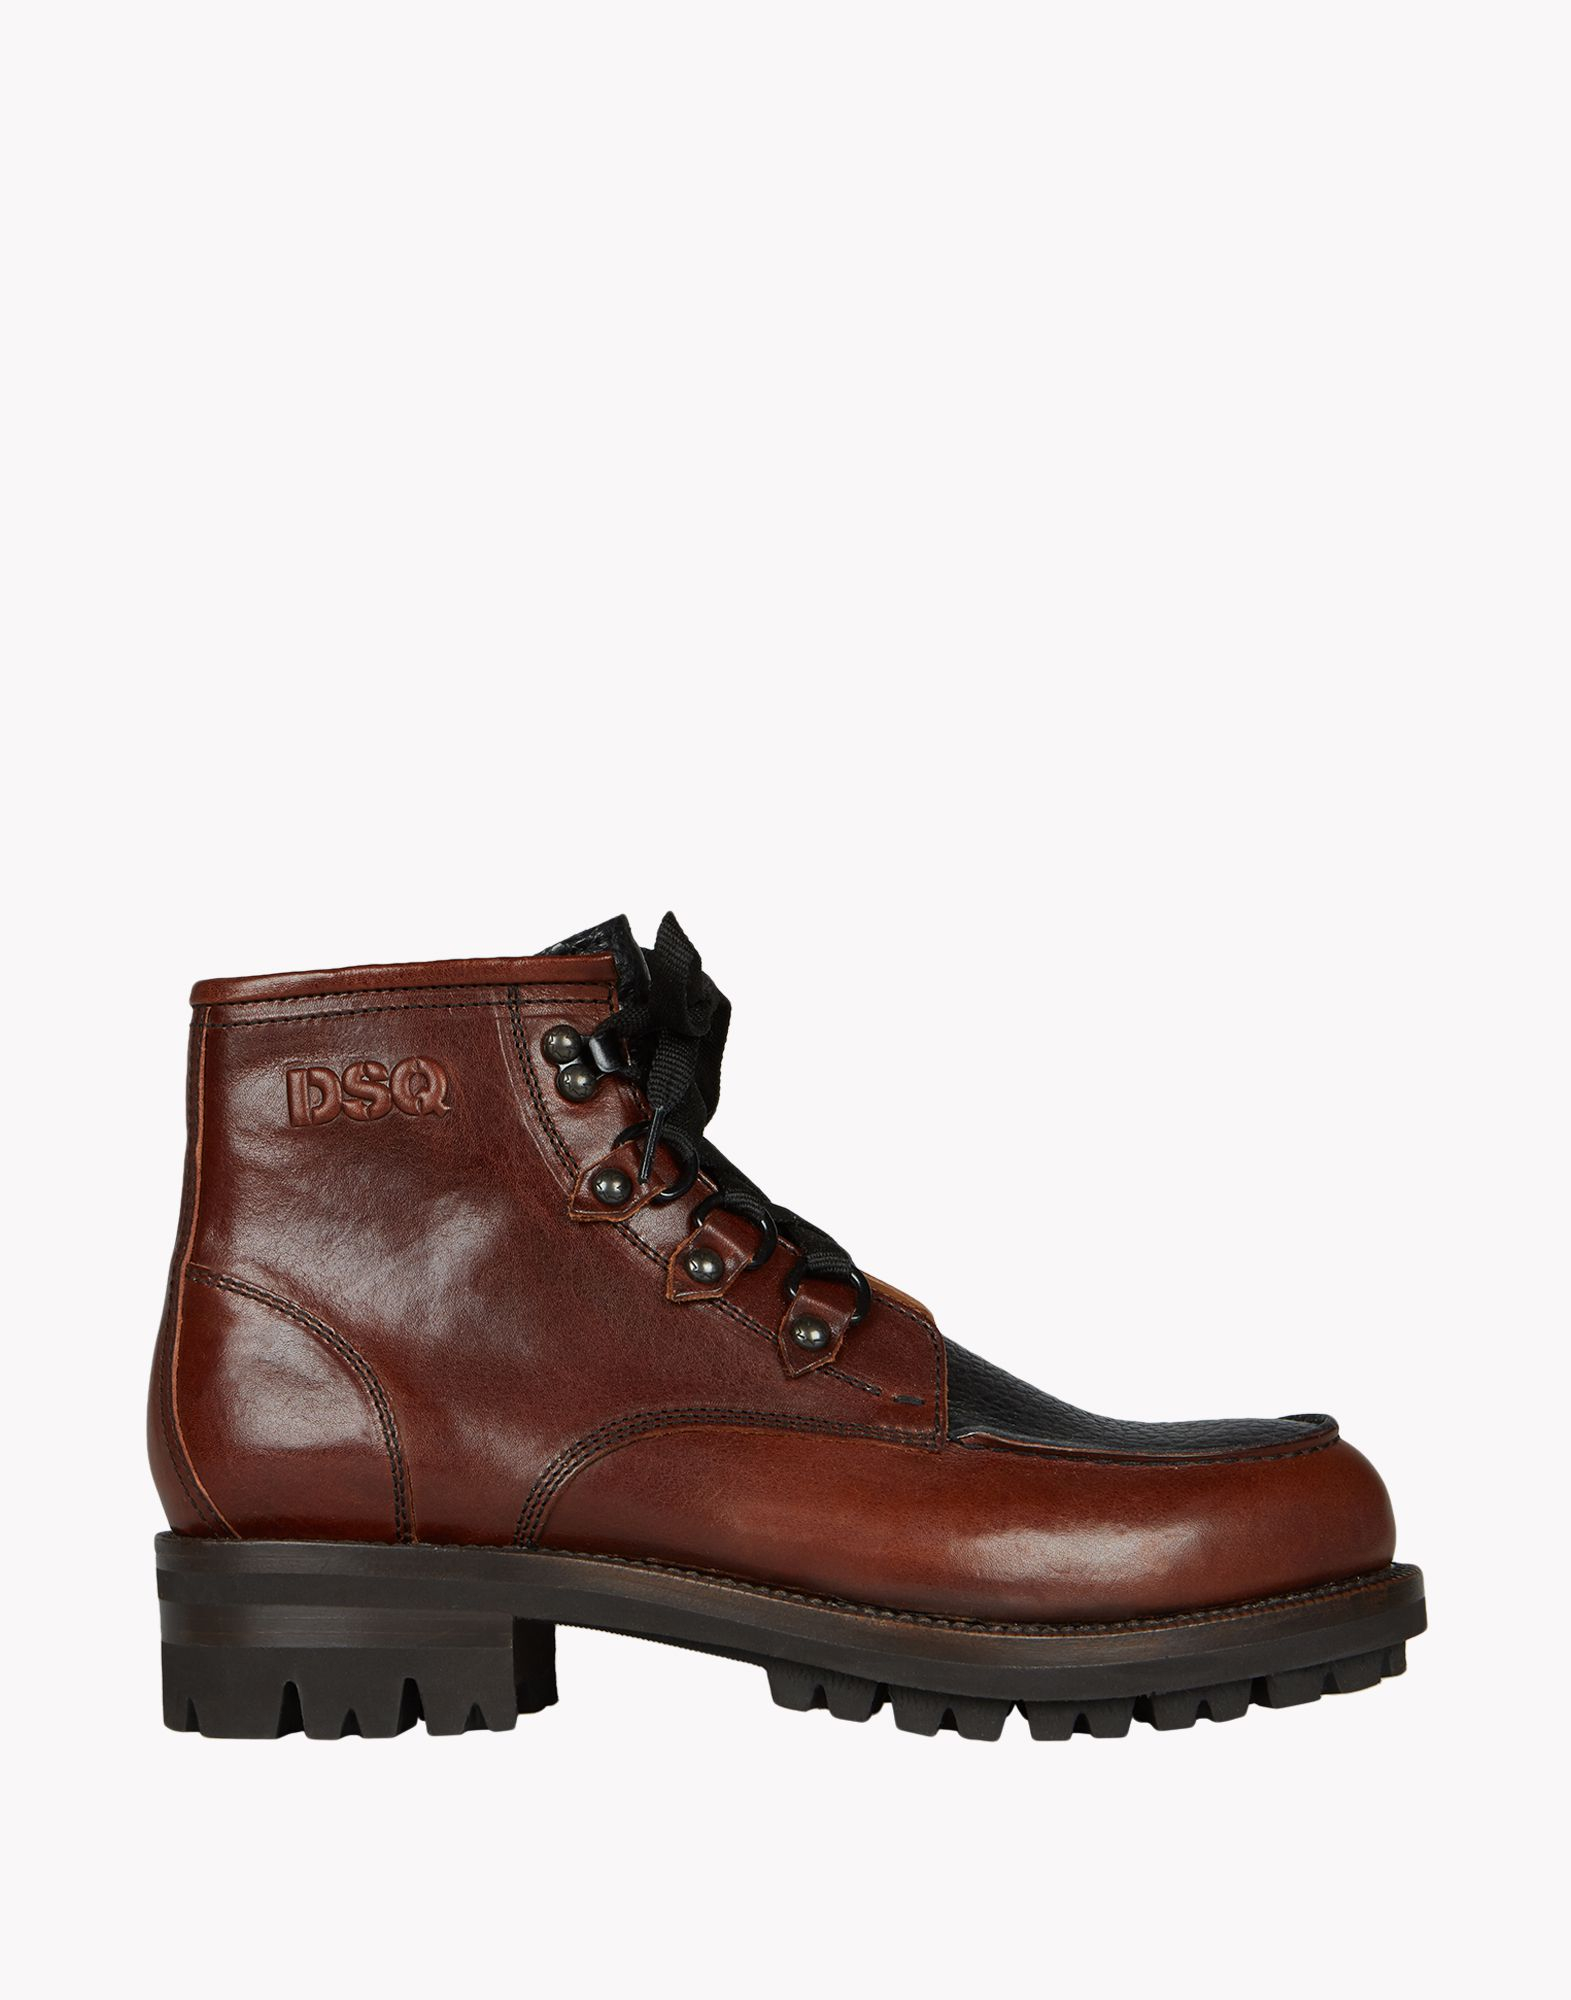 dsquared 178 construction ankle boots in brown for lyst